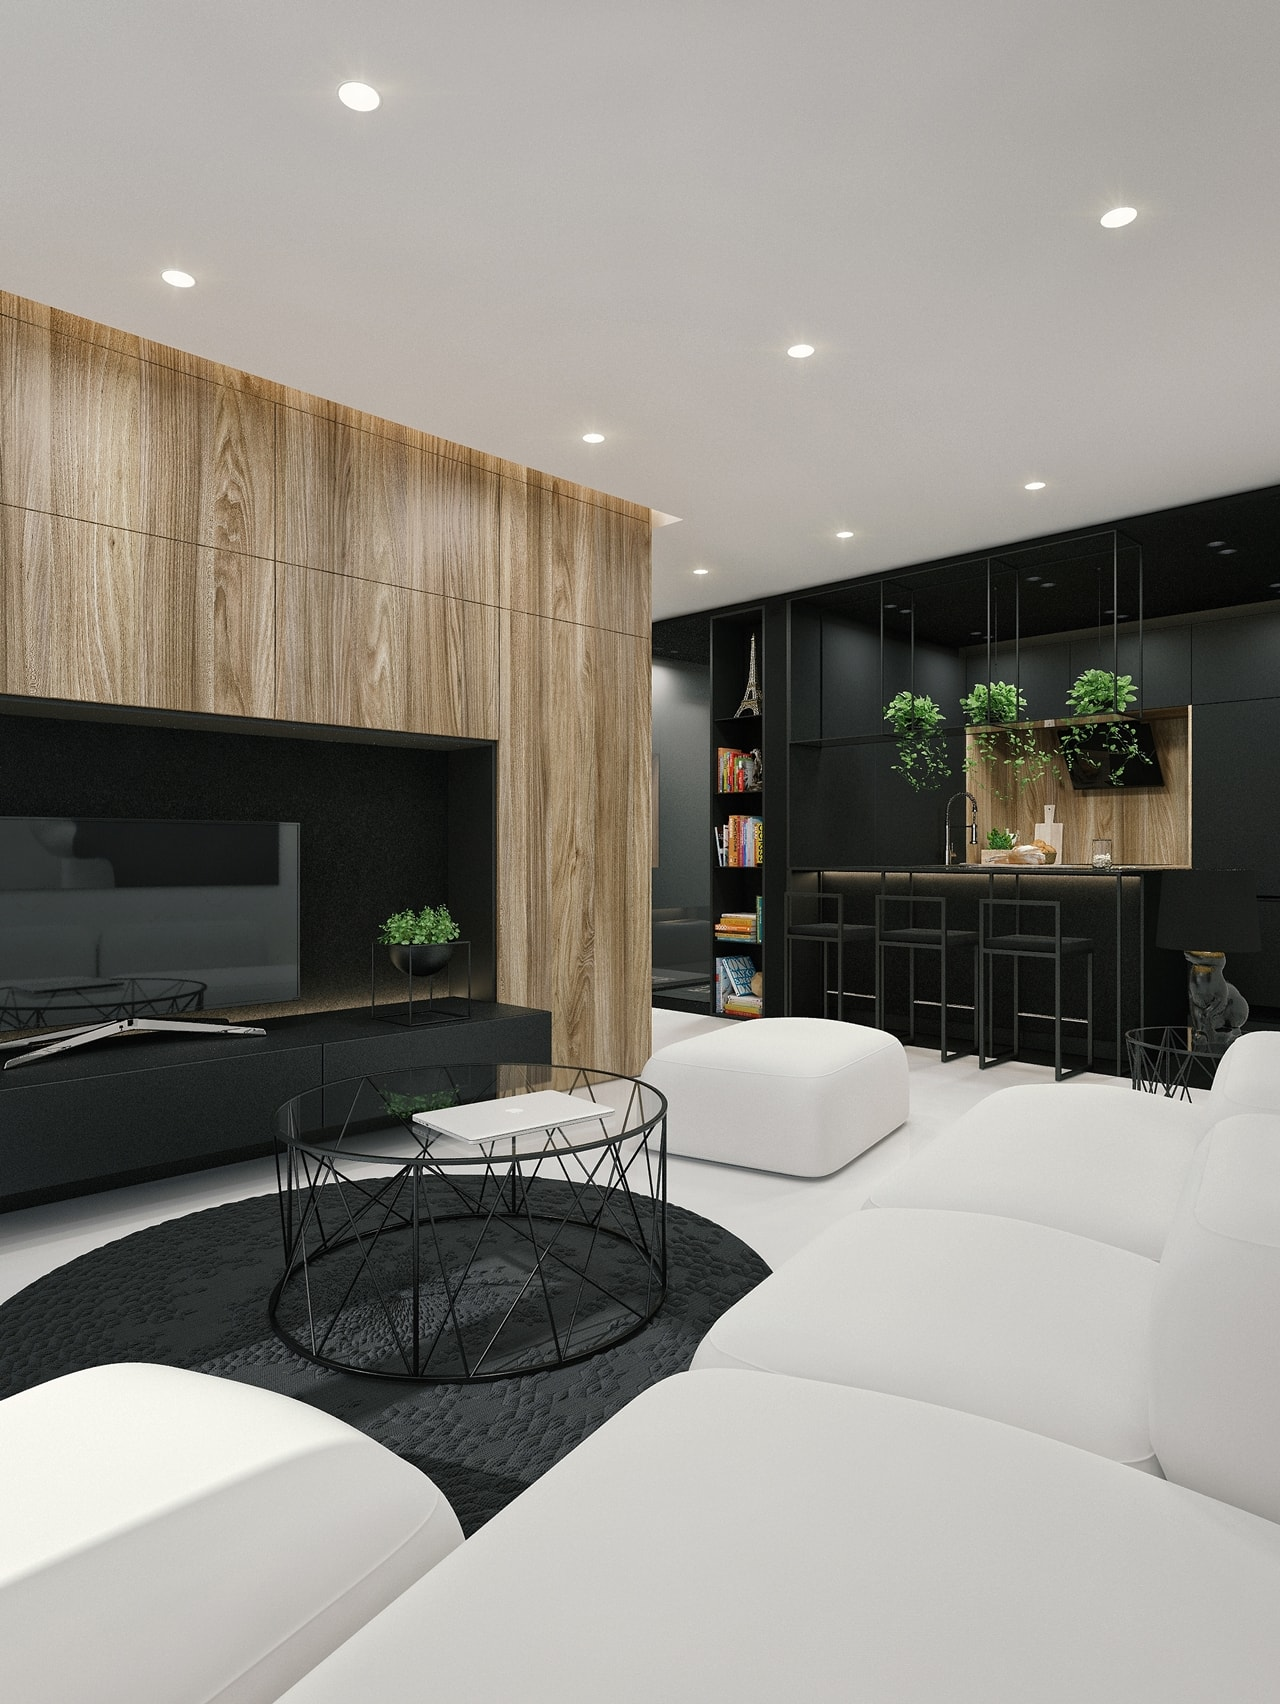 Attractive Black And White Interior Design With Wood Texture In Living Room By ID White